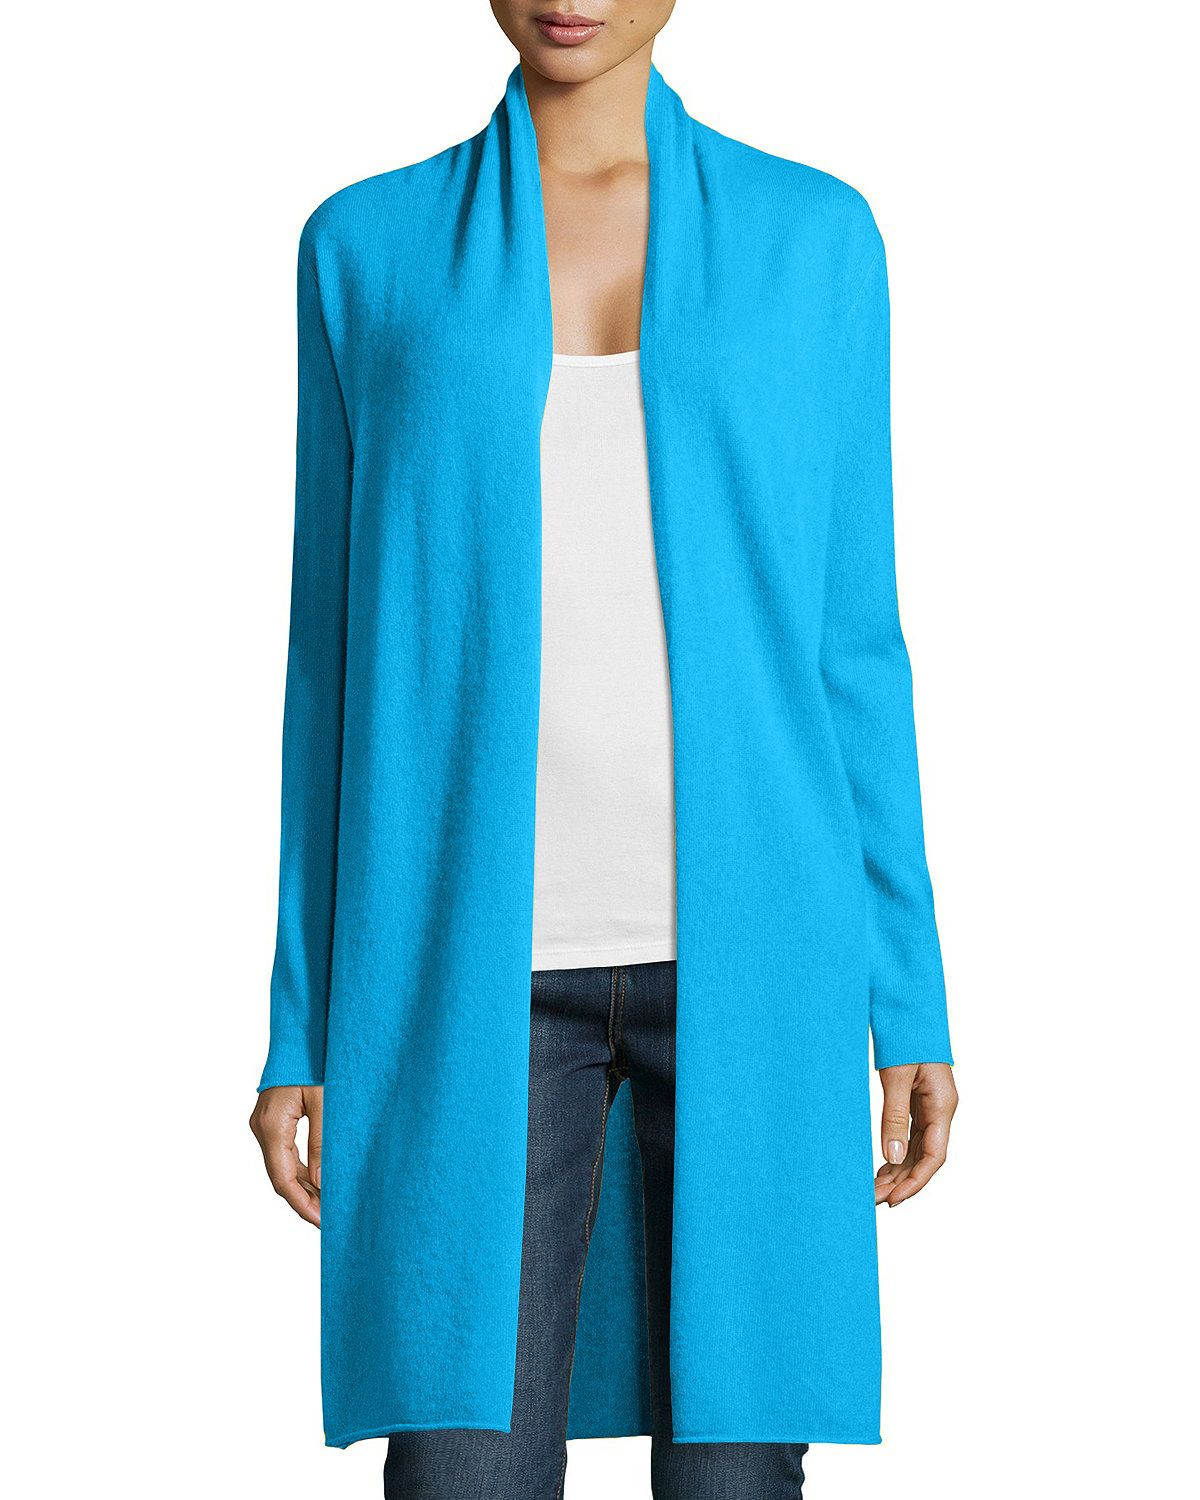 Long Cashmere Duster Cardigan, Women's | Products | Pinterest ...